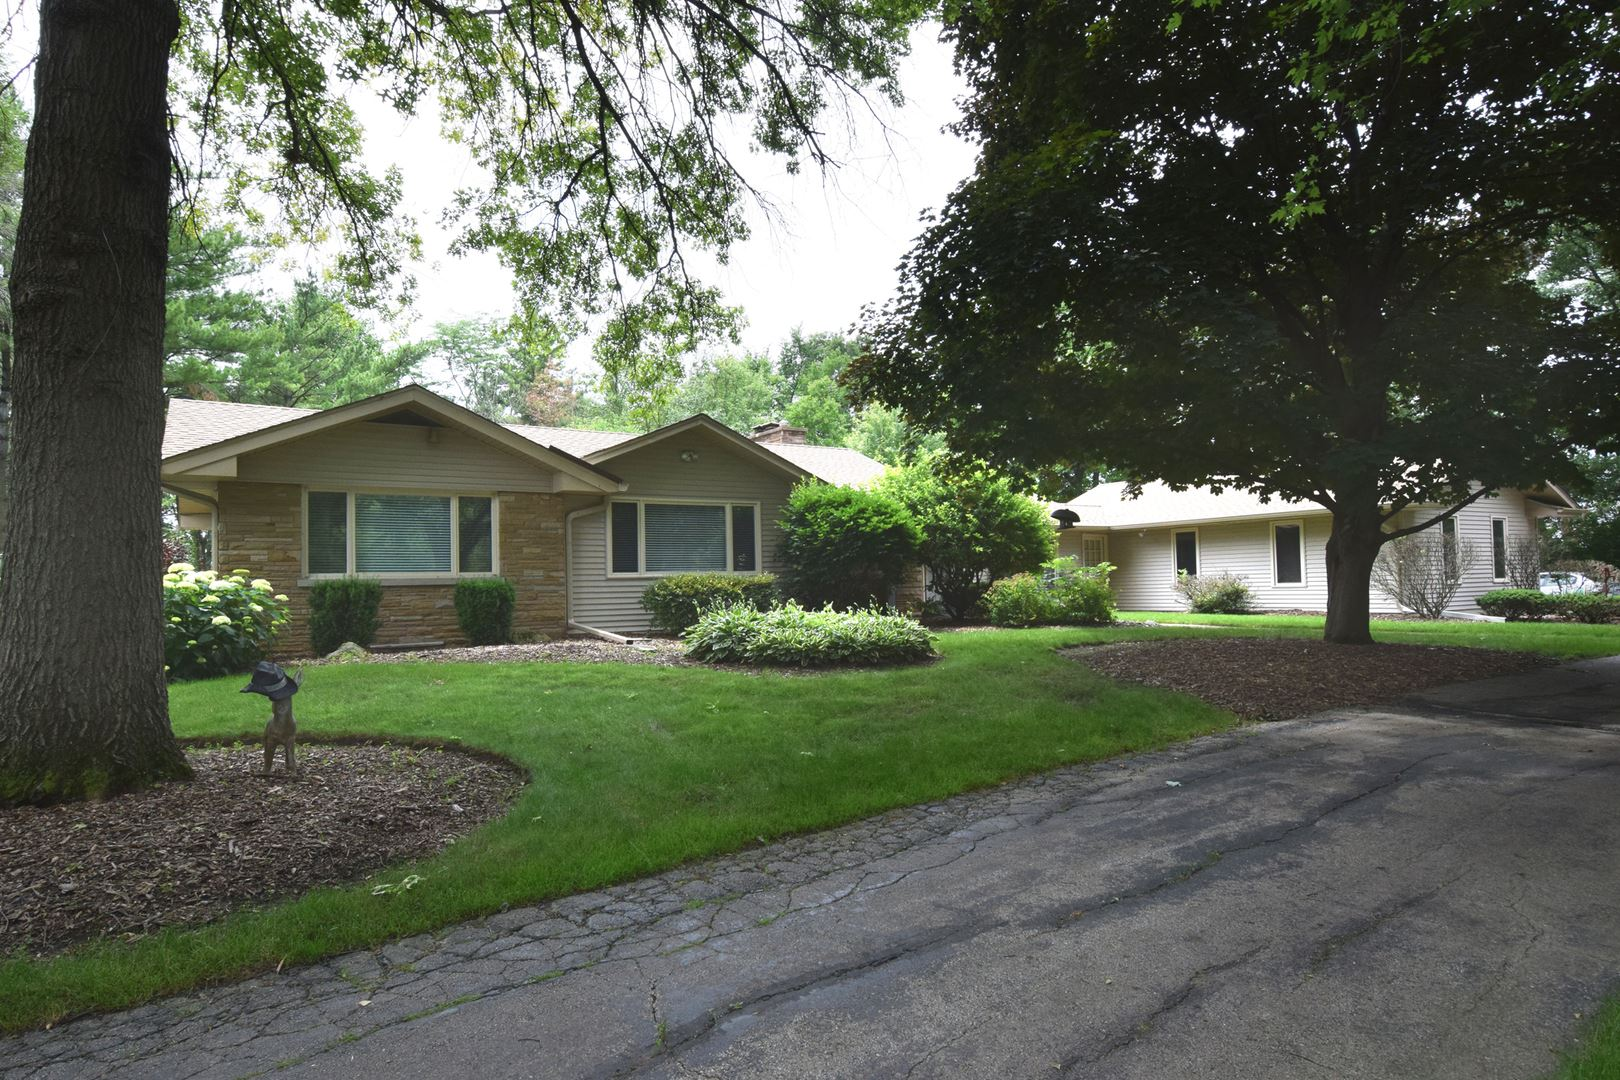 28W541 Purnell Road, West Chicago, IL 60185 - #: 11000432